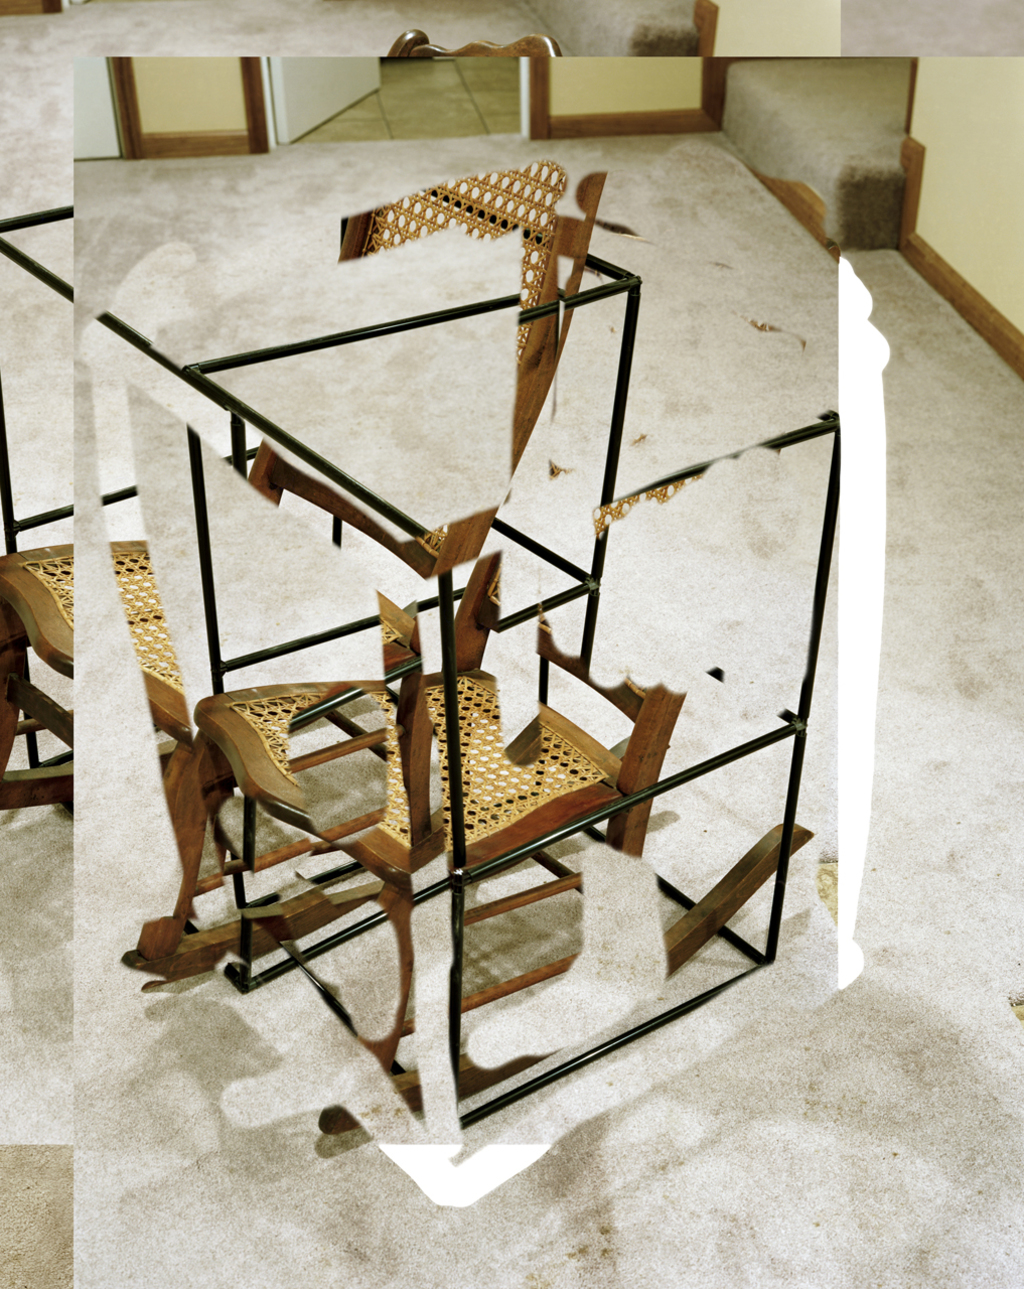 Rocking Chair, 2012 © Lucas Blalock